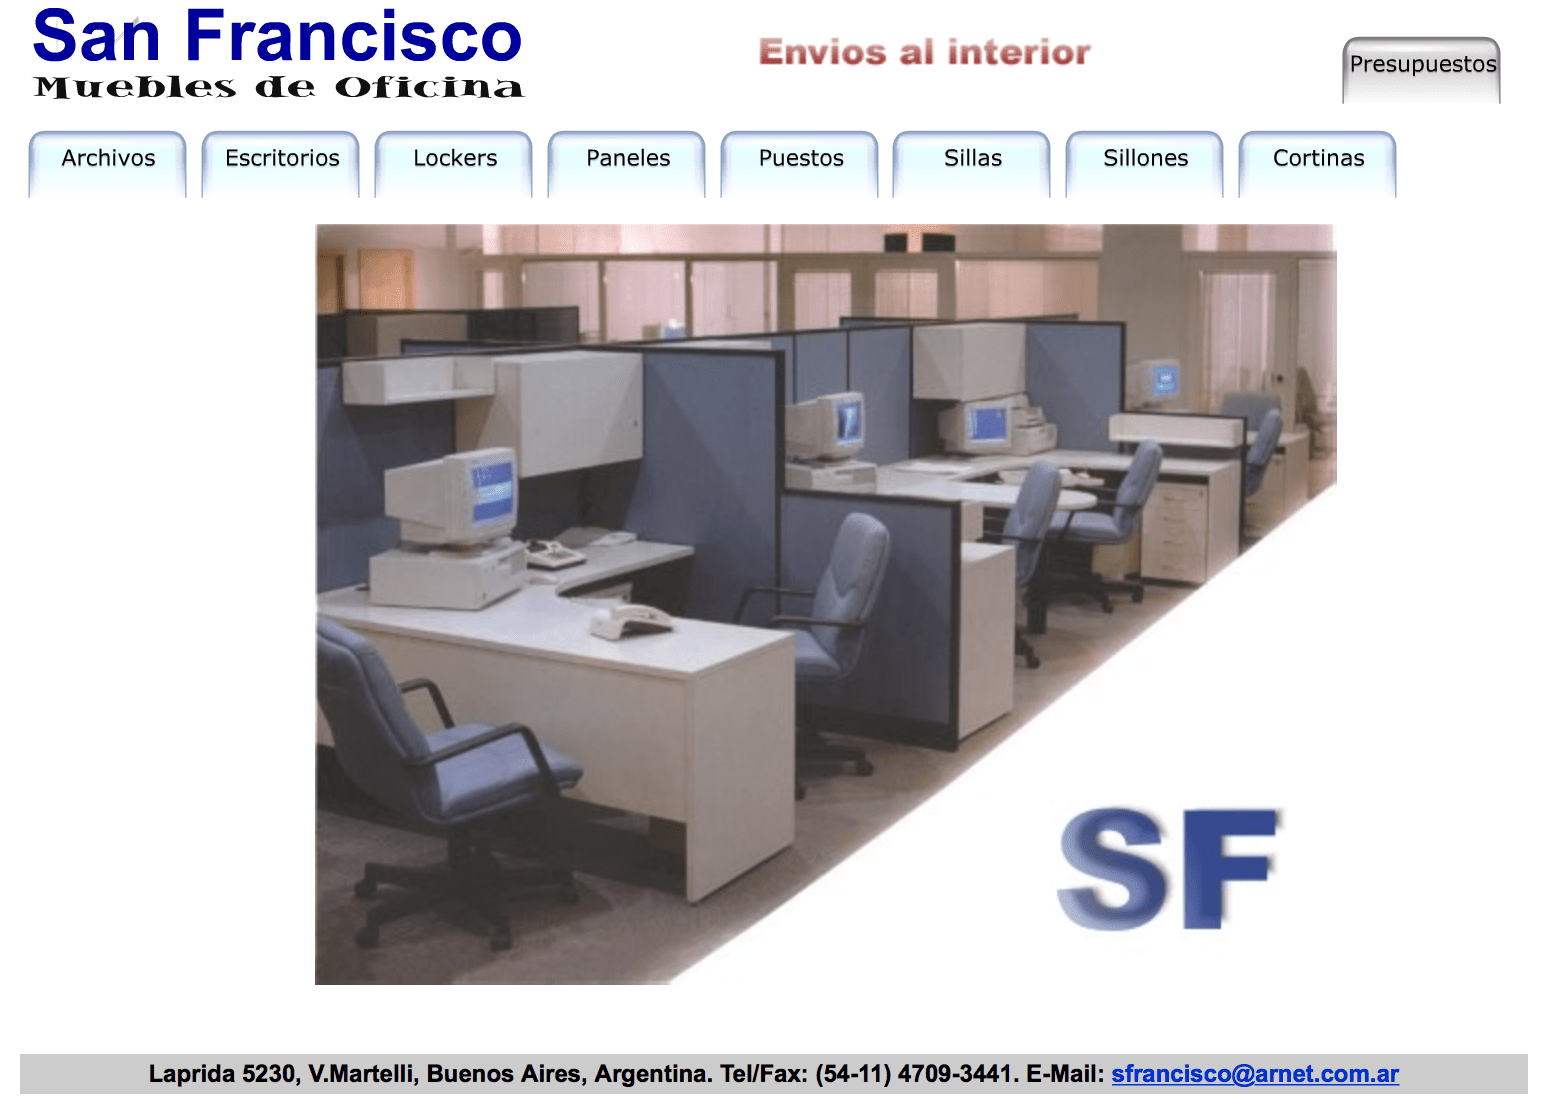 Muebles San Francisco Ecija San Francisco Muebles: A Website From The 90's! | Lantean